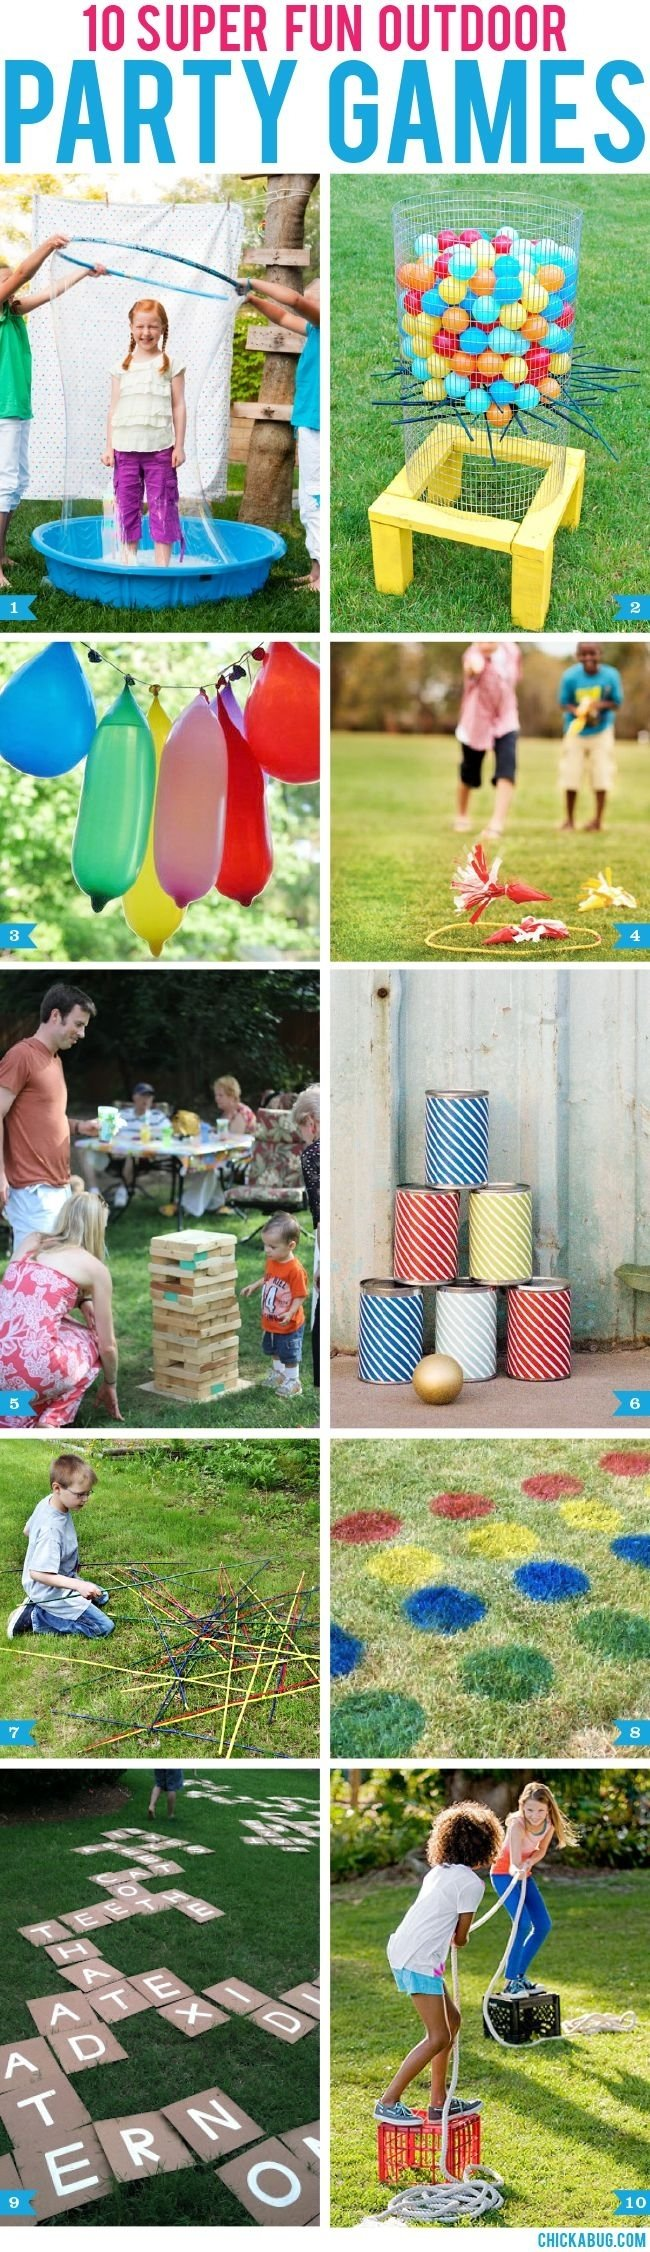 10 Stylish Birthday Party Game Ideas For Toddlers birthday party game ideas for toddlers wedding 2020